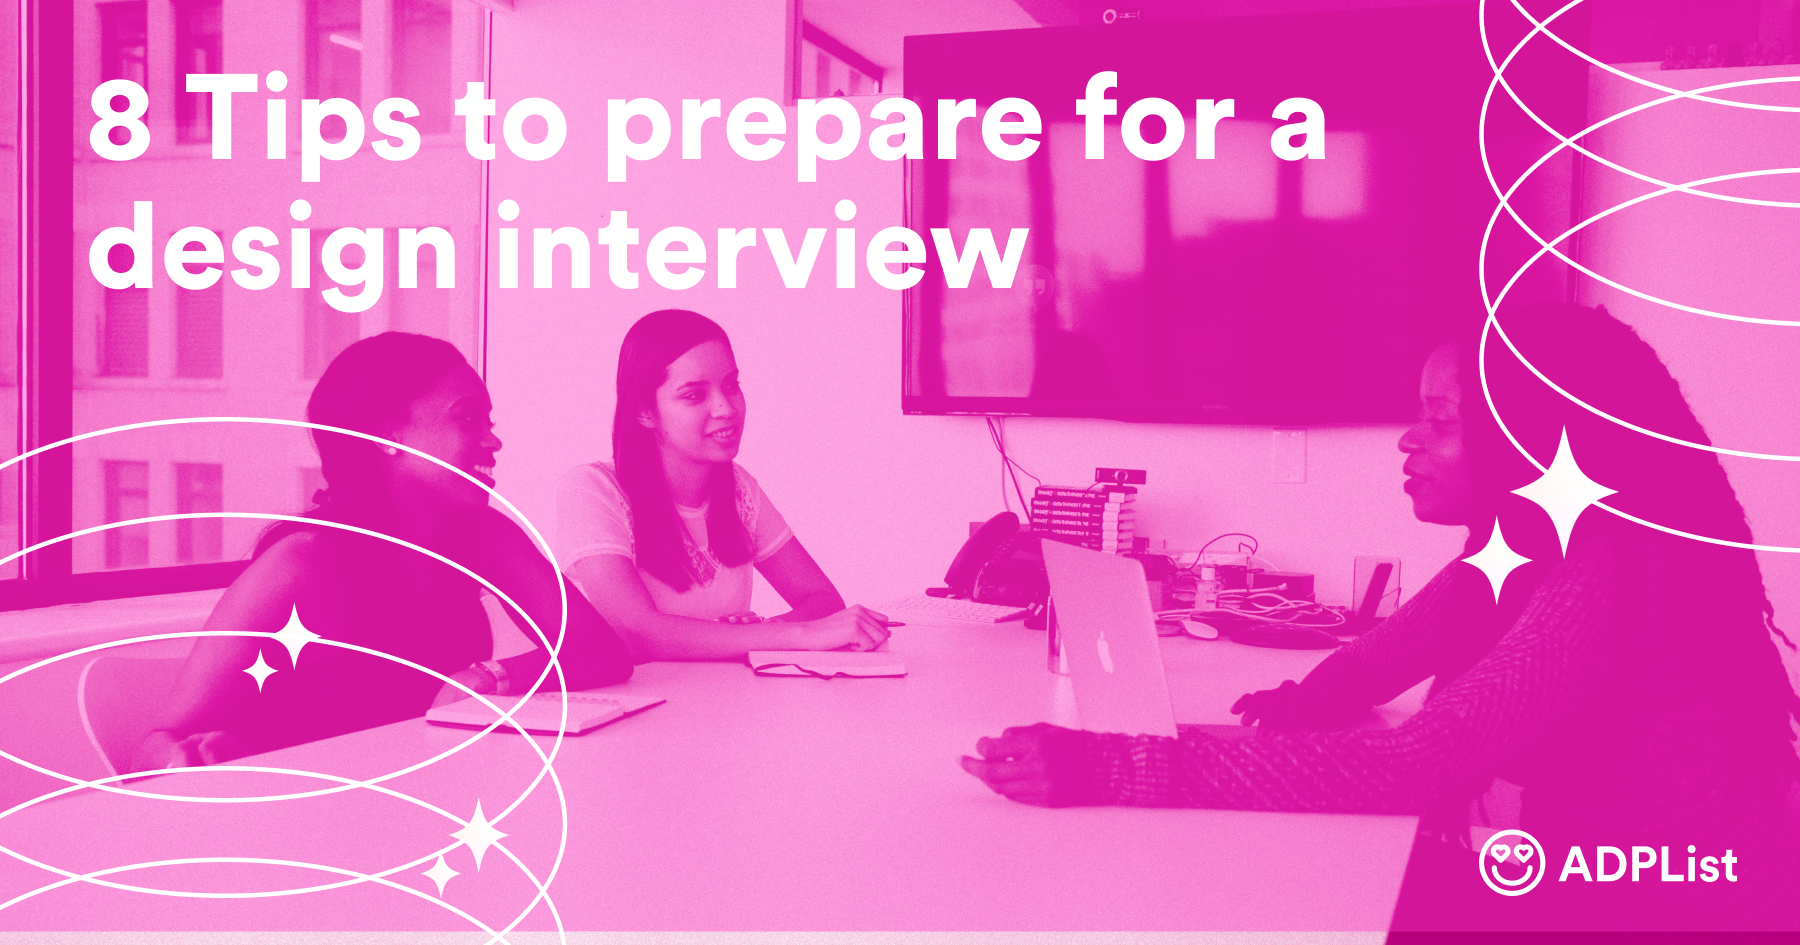 8 Tips to prepare for a design interview